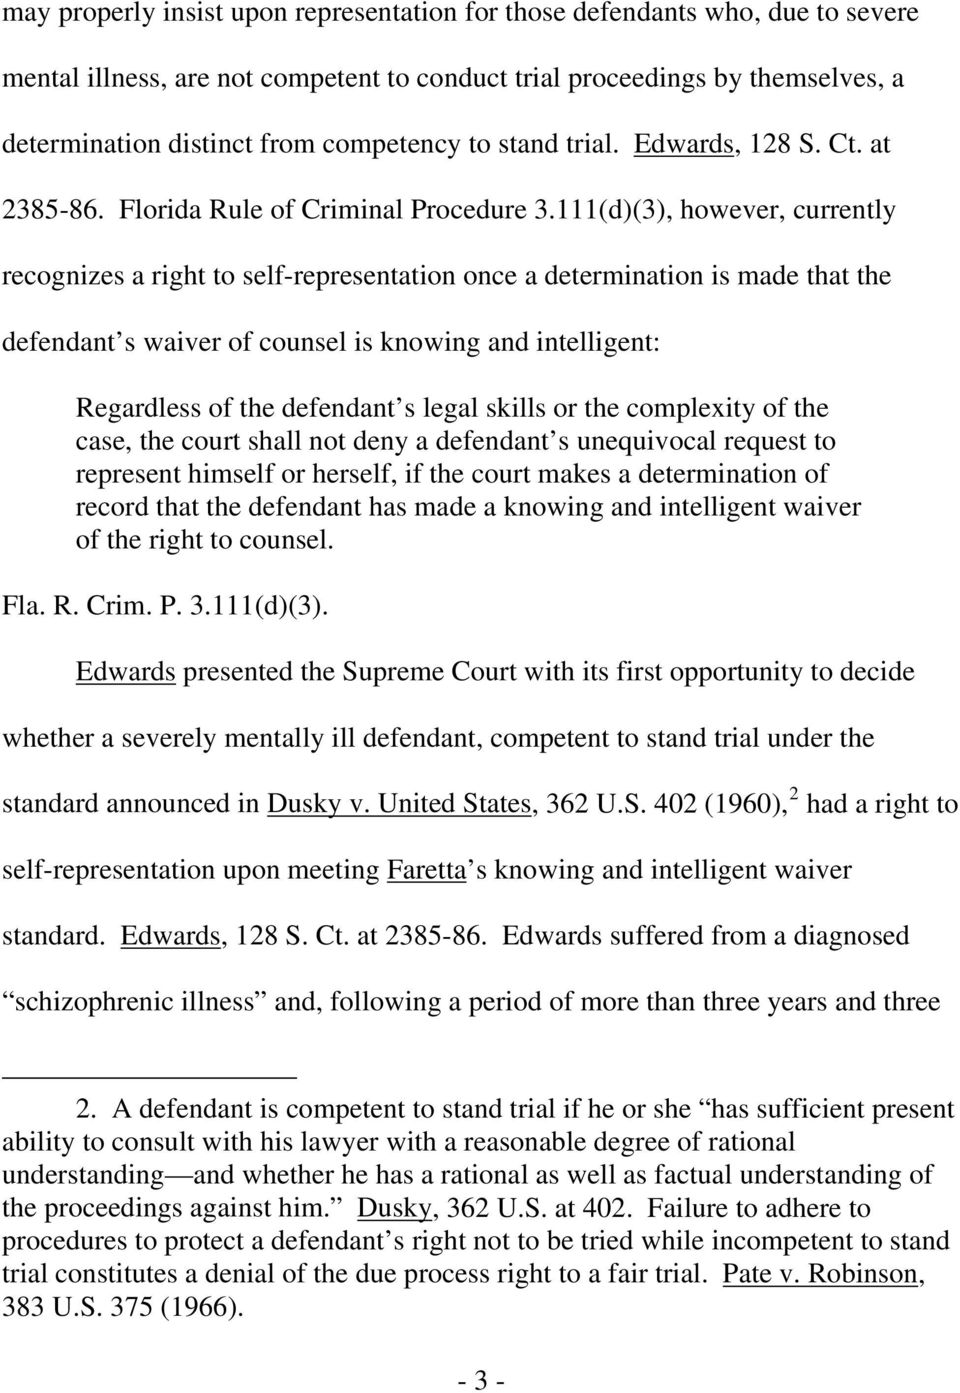 111(d)(3), however, currently recognizes a right to self-representation once a determination is made that the defendant s waiver of counsel is knowing and intelligent: Regardless of the defendant s